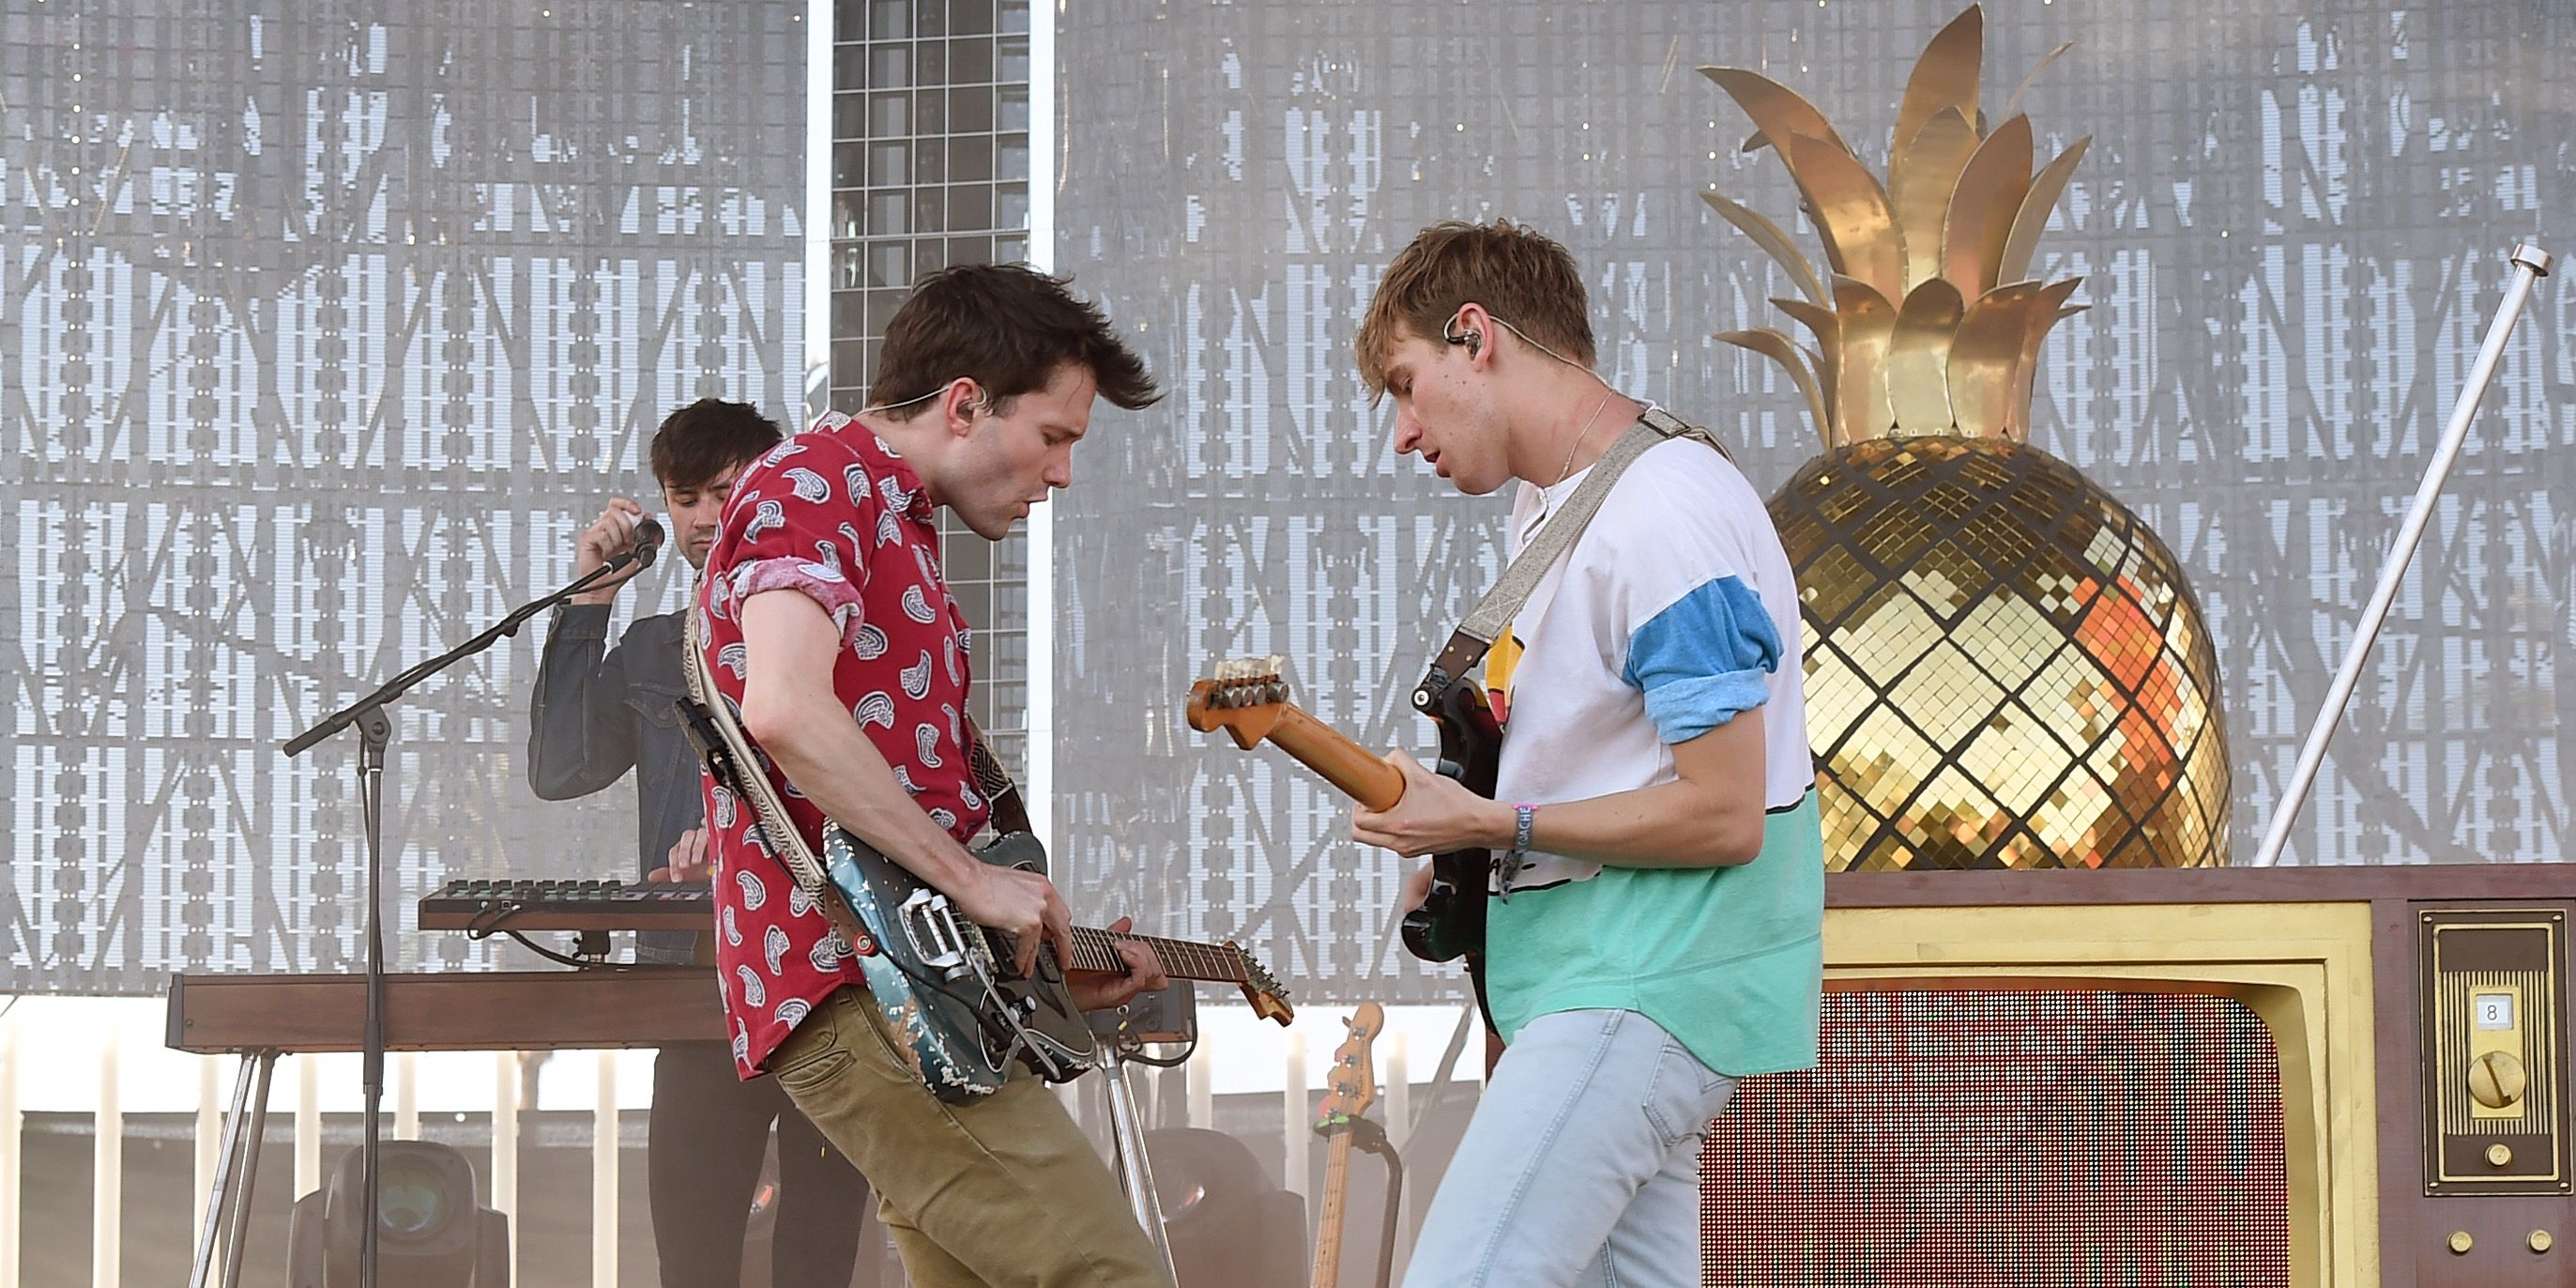 Glass Animals perform on the Coachella Stage during day 1 of the 2017 Coachella Valley Music & Arts Festival